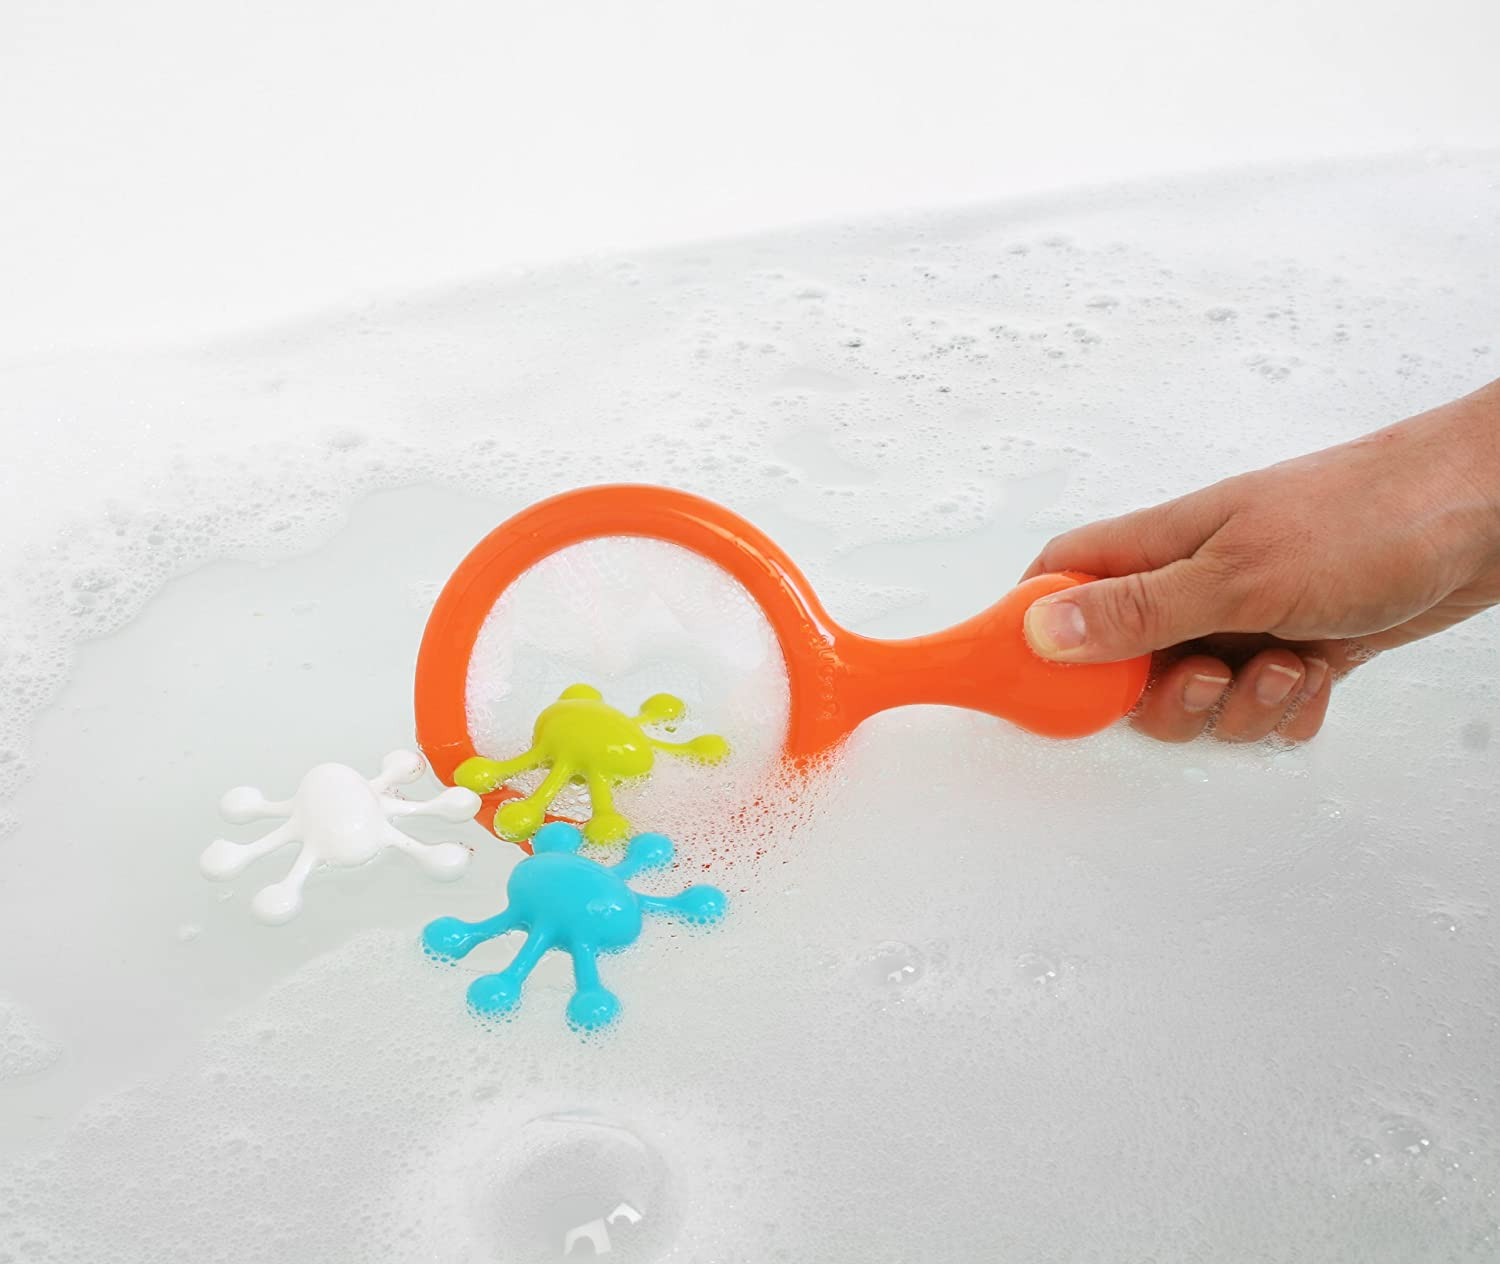 boon water bugs floating bath toys with net amazoncouk toys  - boon water bugs floating bath toys with net amazoncouk toys  games